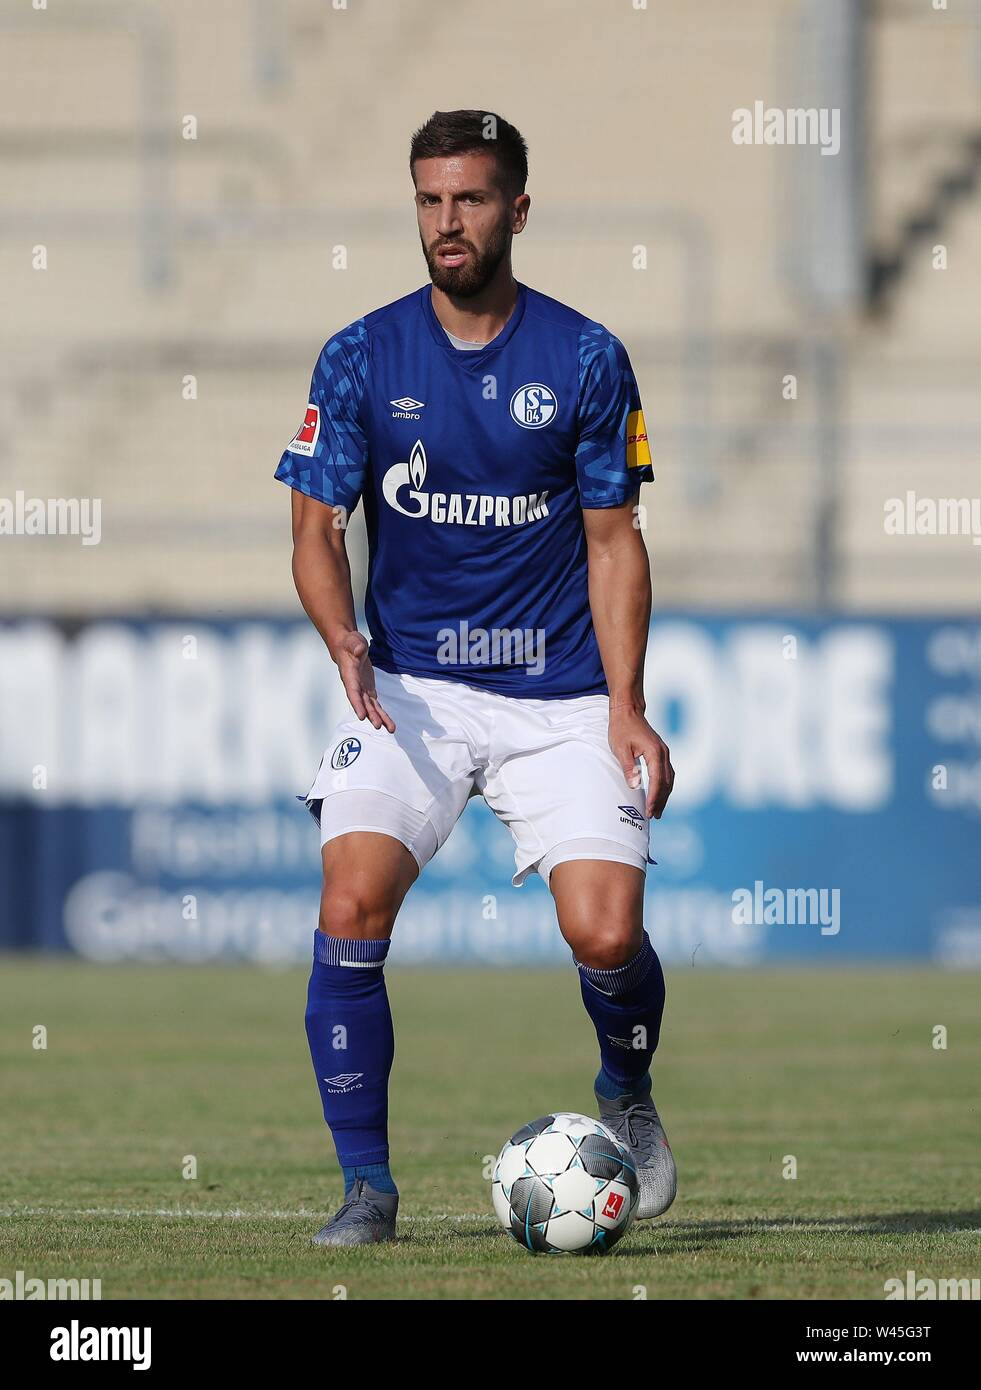 Lotte, Deutschland. 19th July, 2019. firo: 19.07.2019, football, 1.Bundesliga, season 2019/2020, friendly match, FC Schalke 04 - Norwich City Matija NASTASIC, Schalke, single action | usage worldwide Credit: dpa/Alamy Live News - Stock Image